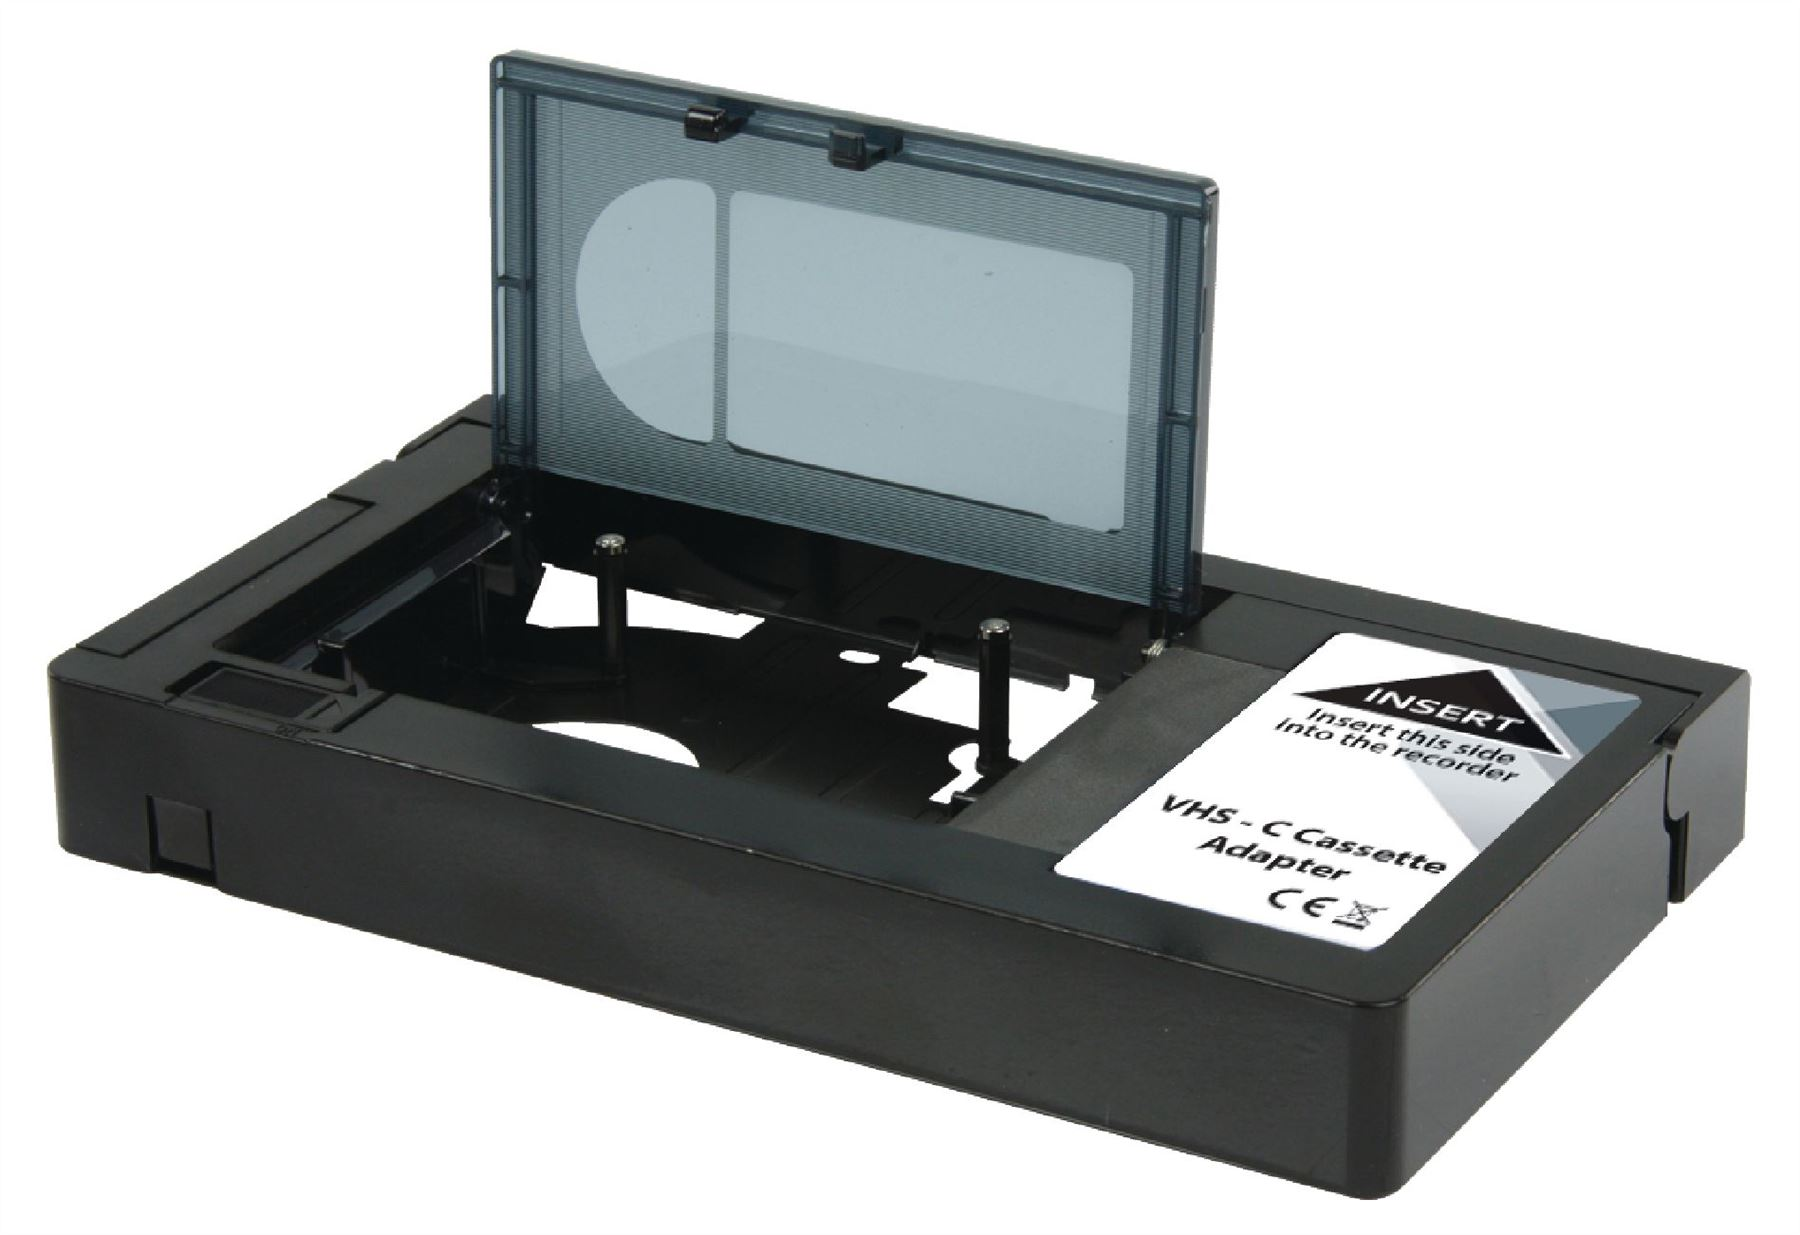 Konig vhs c to vhs cassette adapter converts video for Mobiletto camera